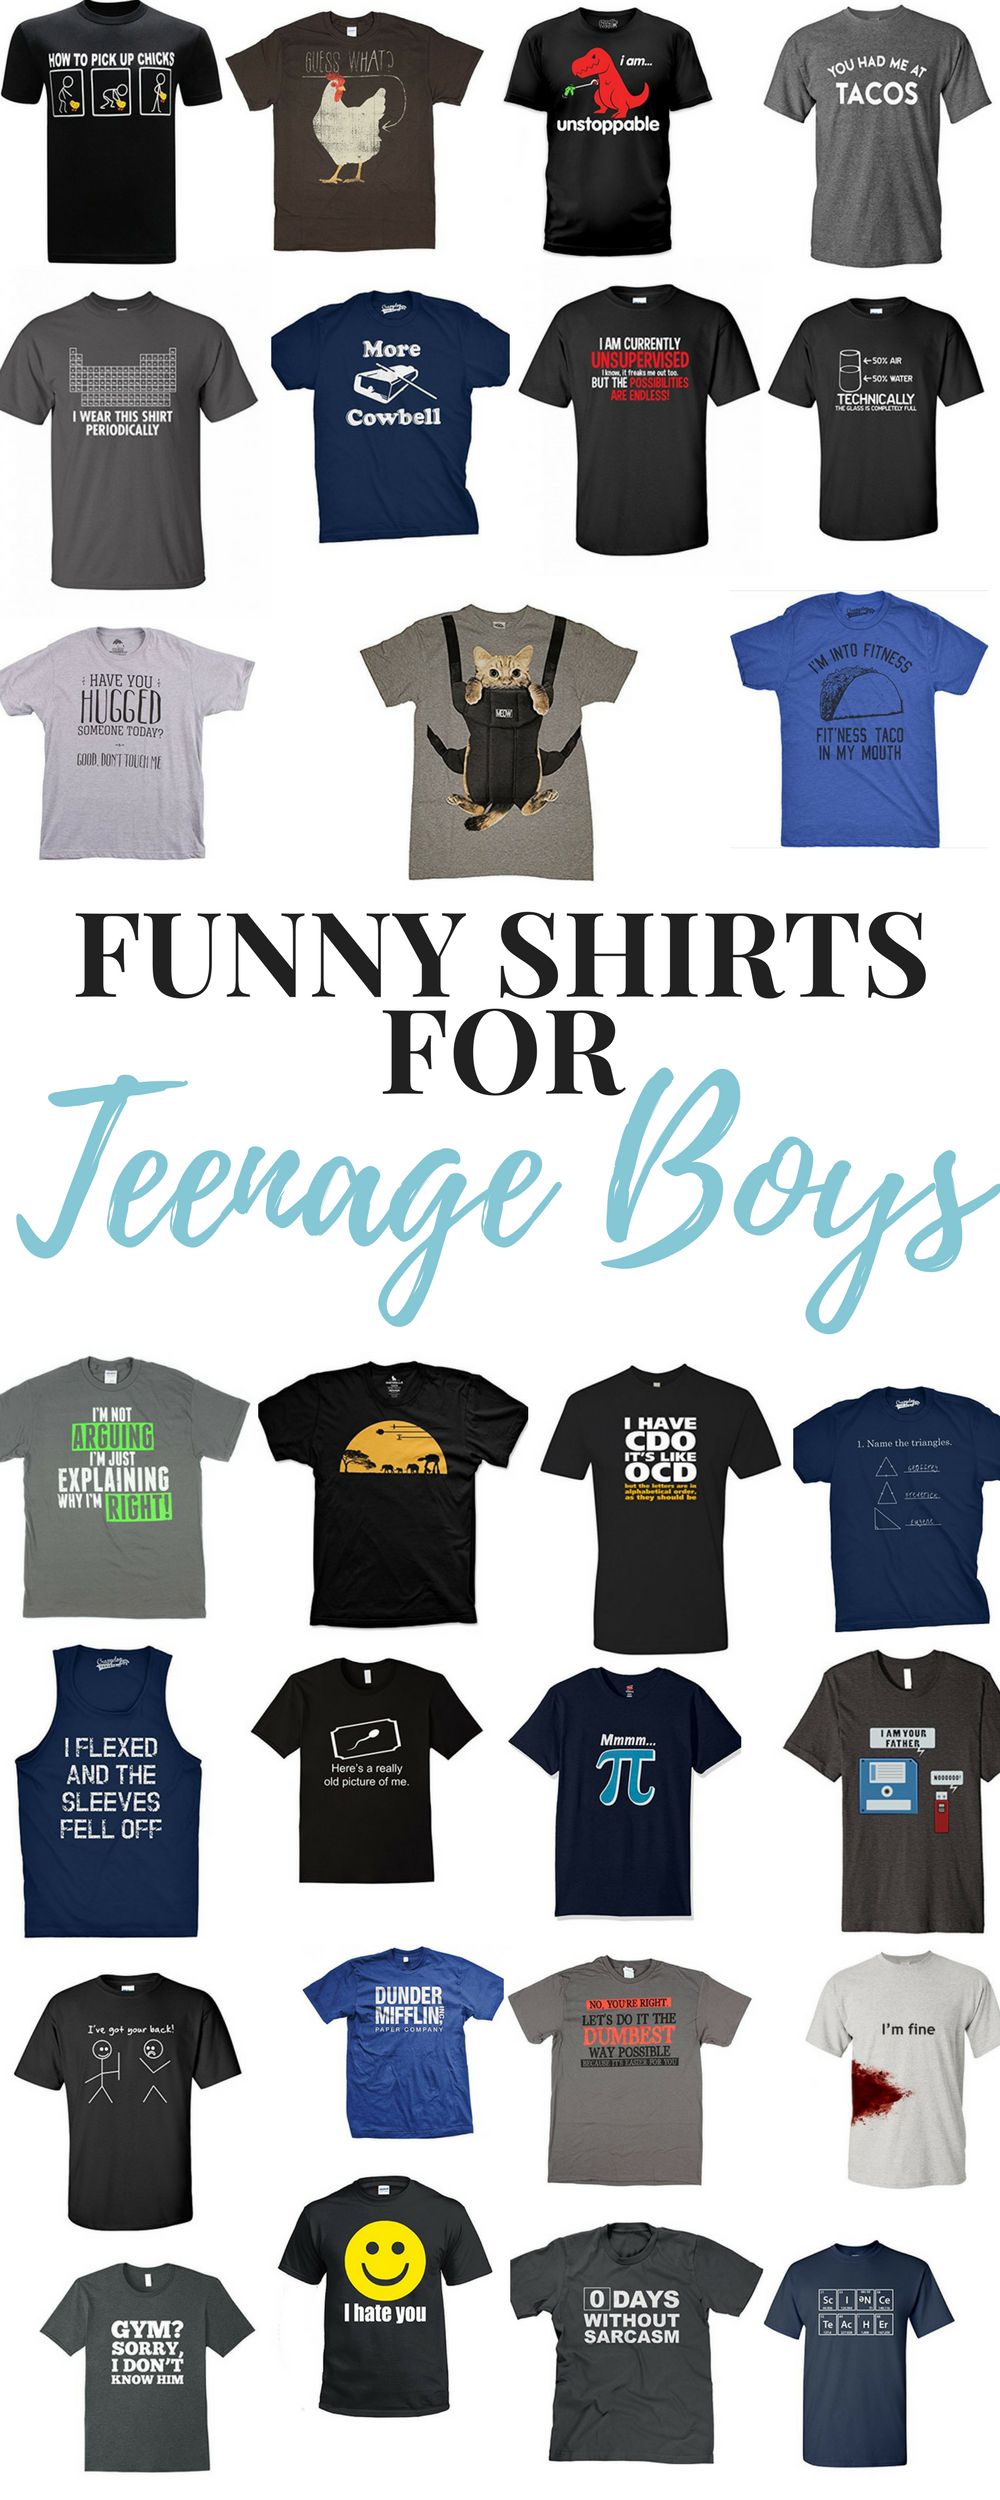 Funny T-shirts for Teens - Gifts for Teenage Boys - it's always a good present to buy a funny shirt for the teen on your list.  Here are some great ones to get your ideas going. Whether you are looking for what to buy a teenage boy, or what to buy the man on your list...a funny t is a safe bet!